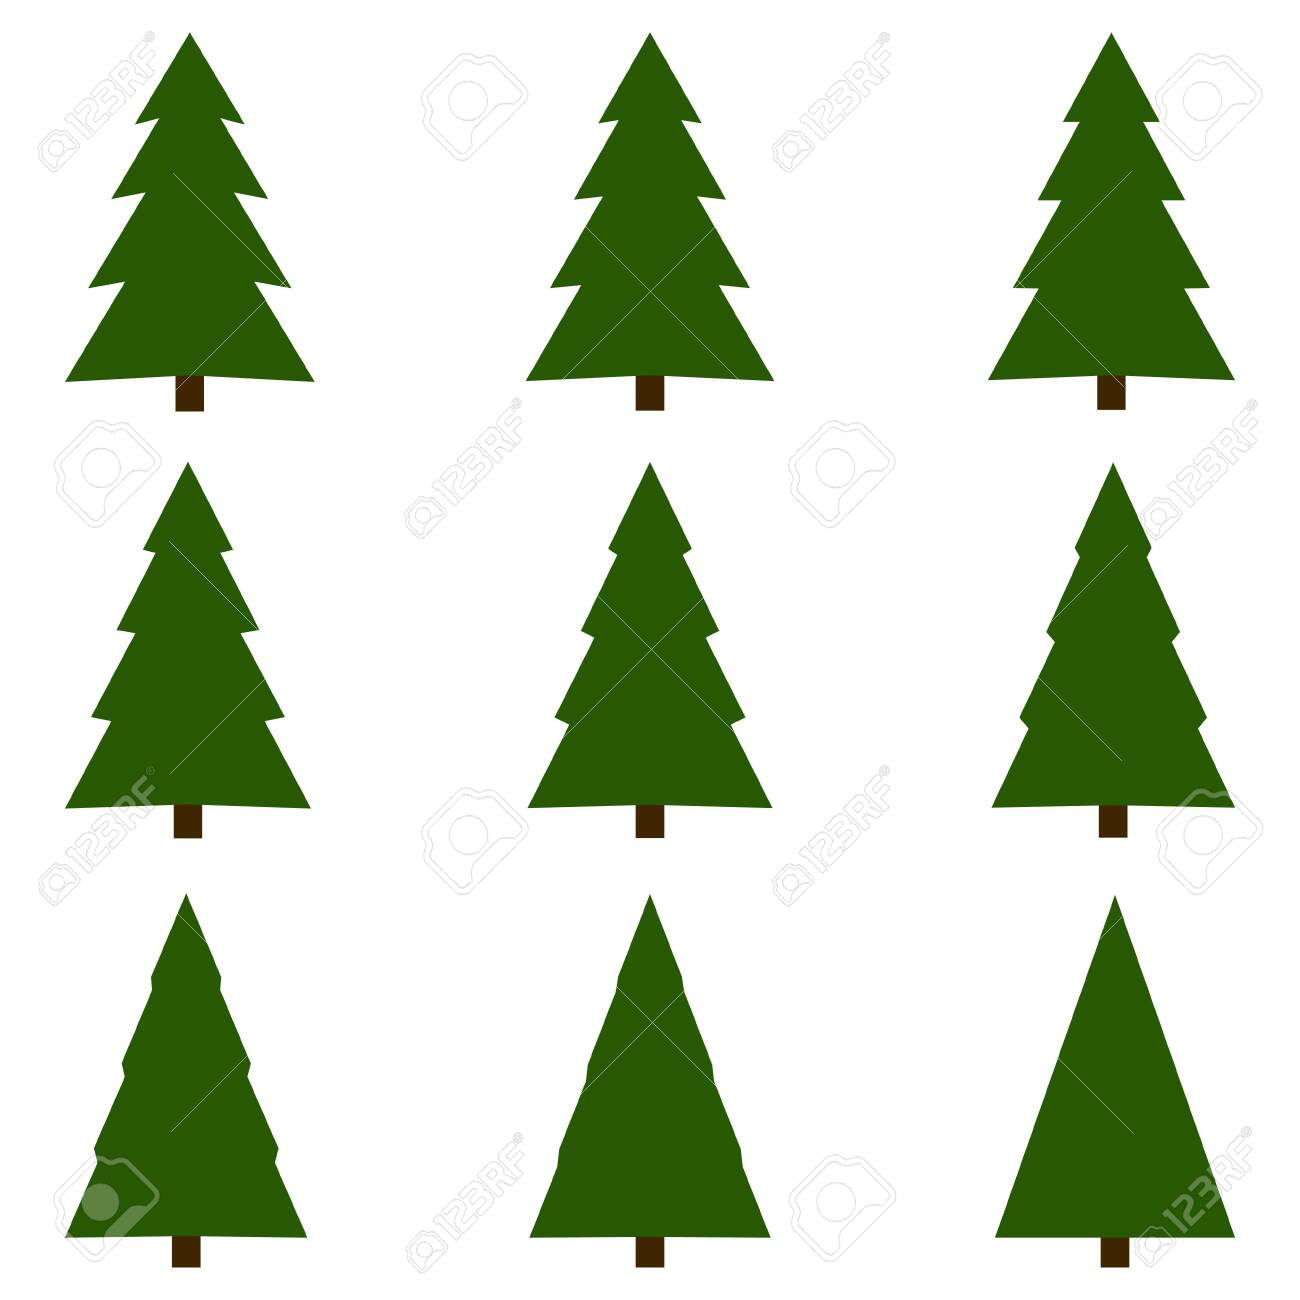 set of christmas trees vector christmas tree template royalty free cliparts vectors and stock illustration image 136167350 123rf com